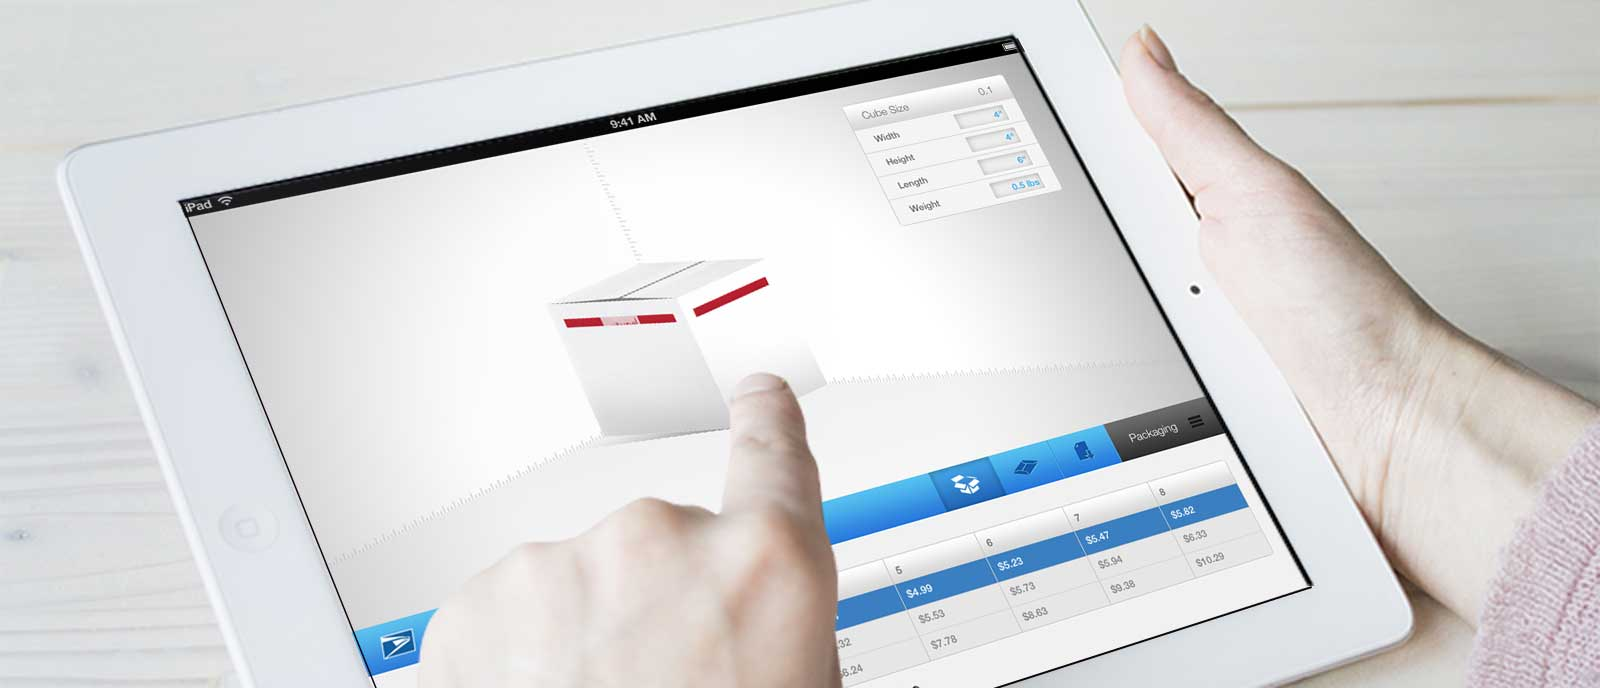 USPS Cubic Calculator for iPad